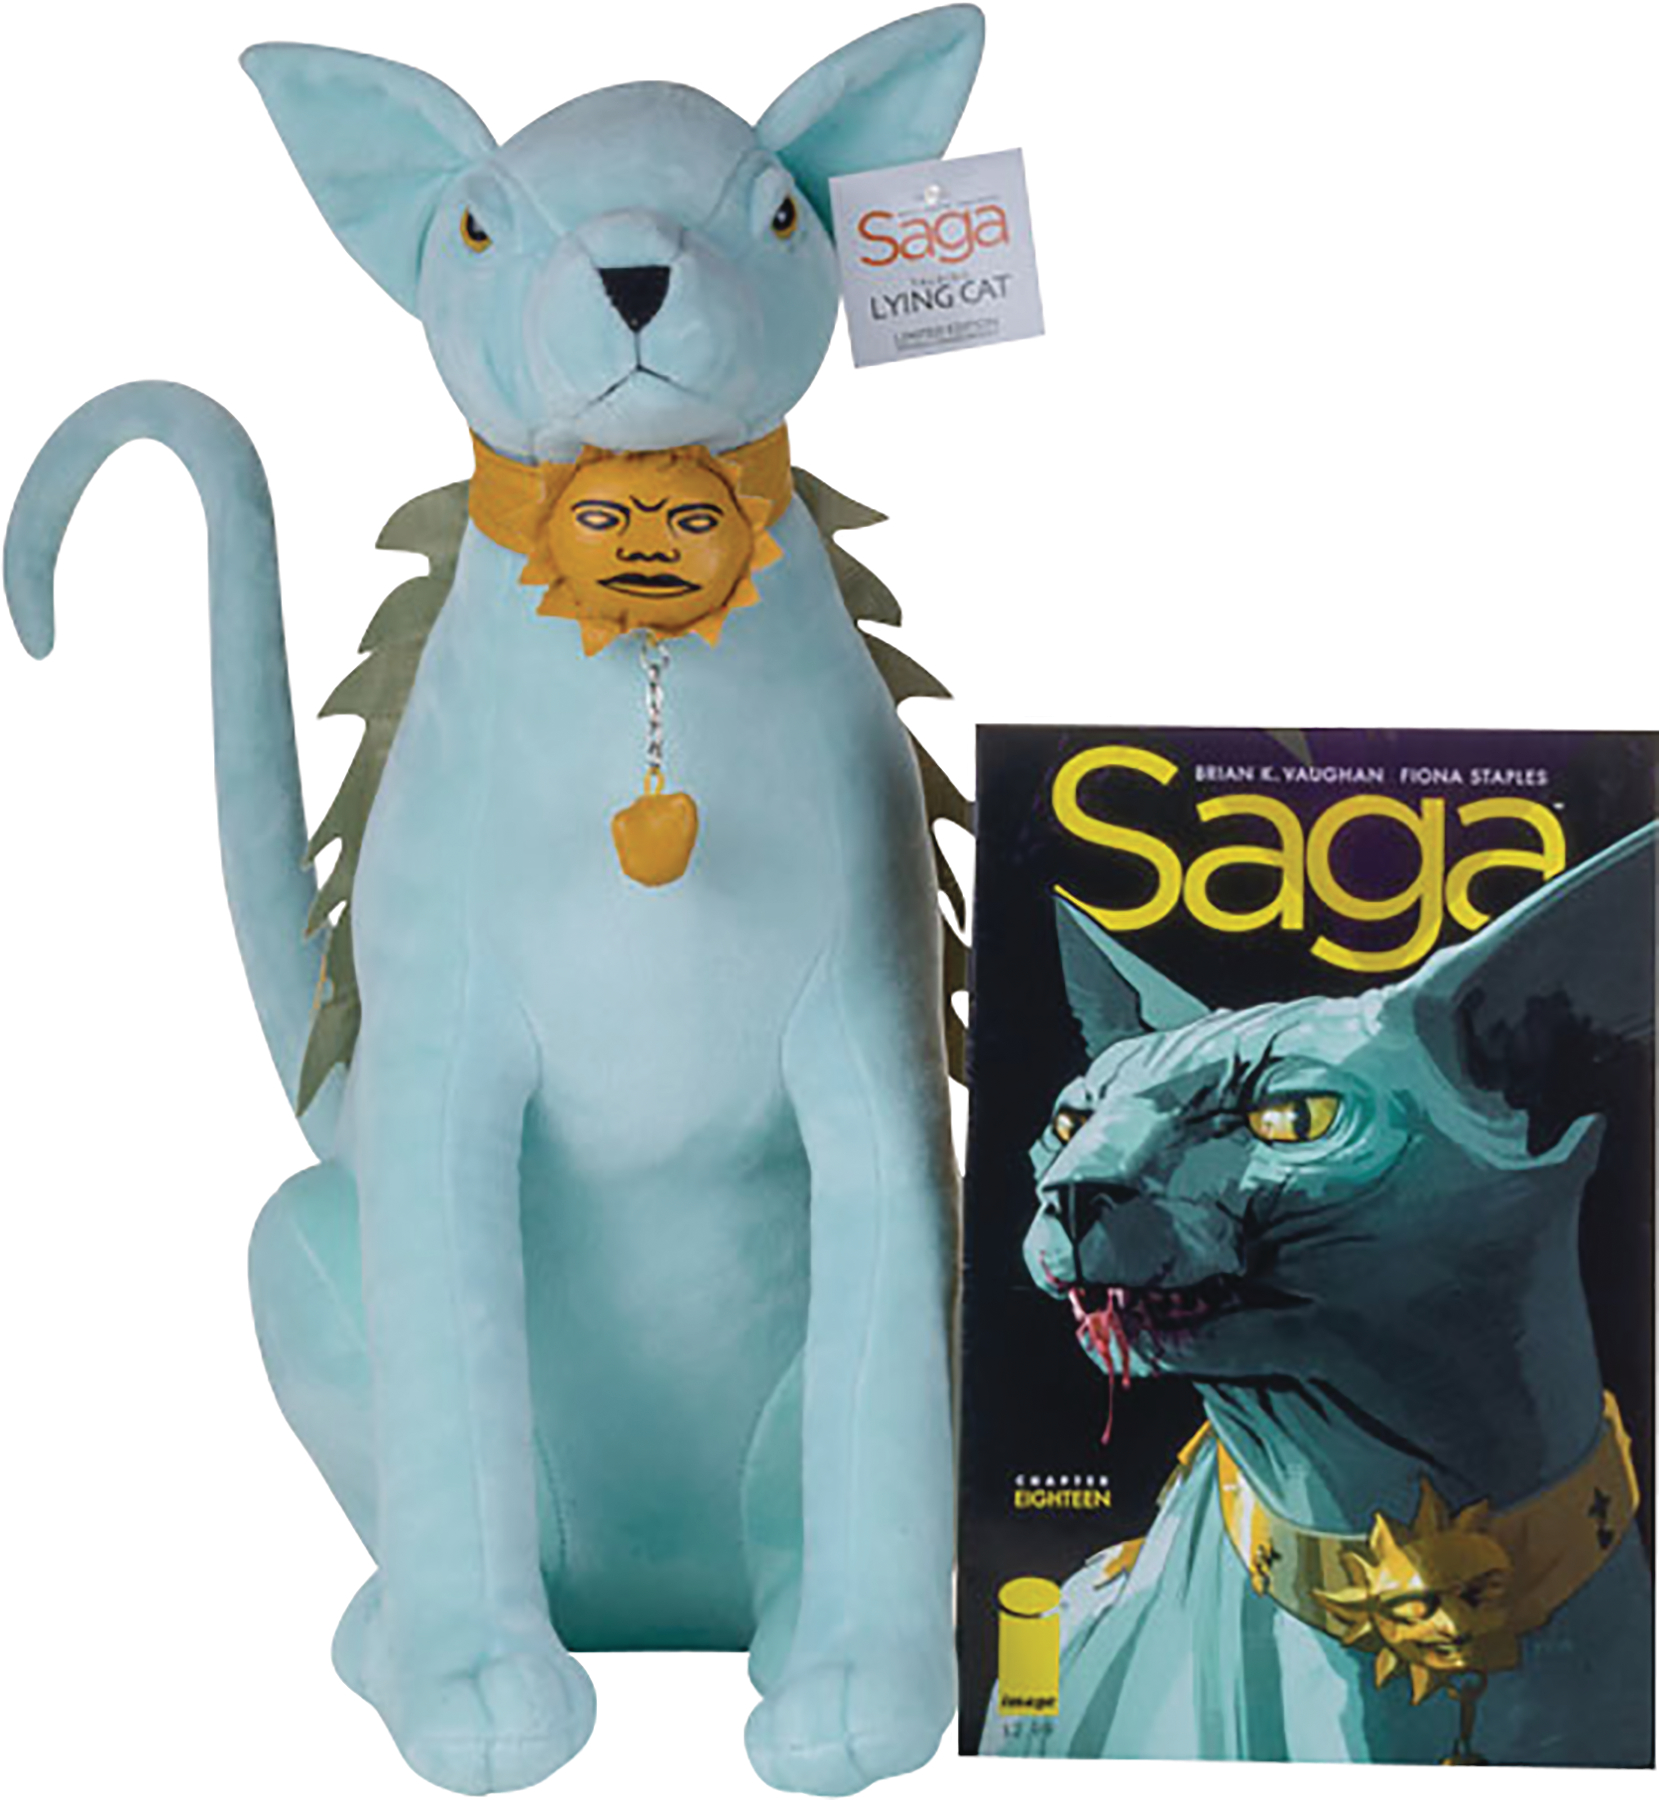 SAGA LYING CAT TALKING PLUSH DOLL ESSENTIAL SEQUENTIAL LLC By Esential Sequential. Inspired by the best-selling, award-winning Image Comics series Saga from Brian K. Vaughan and Fiona Staples, this Lying Cat figure is sculped as a 19-inch tall plush with a poseable tail. Press her collar and Lying Cat will call you out! $79.99